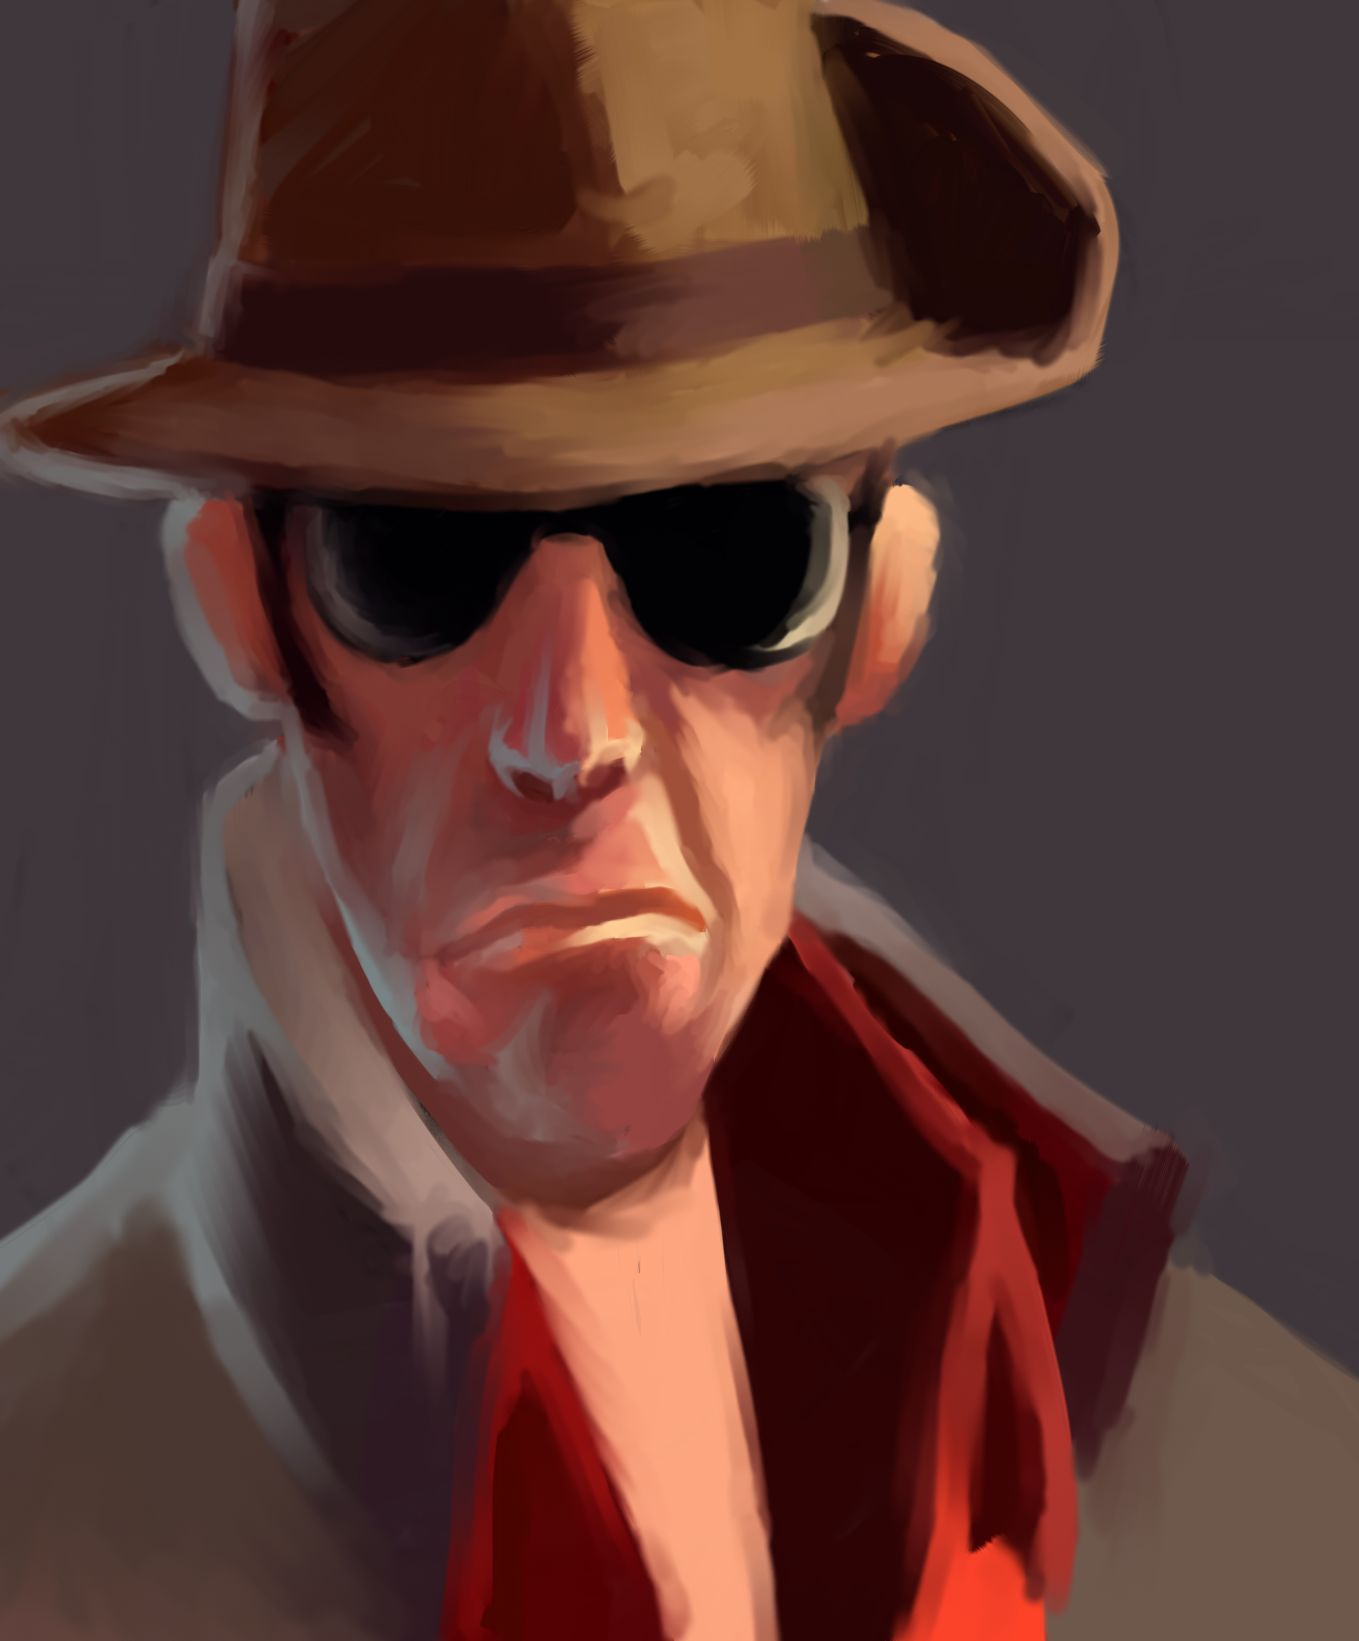 Team Fortress 2 Sniper Fan Art By Falcocanning Deviantart Com Team Fortress 2 Team Fortress 2 Art Team Fortress